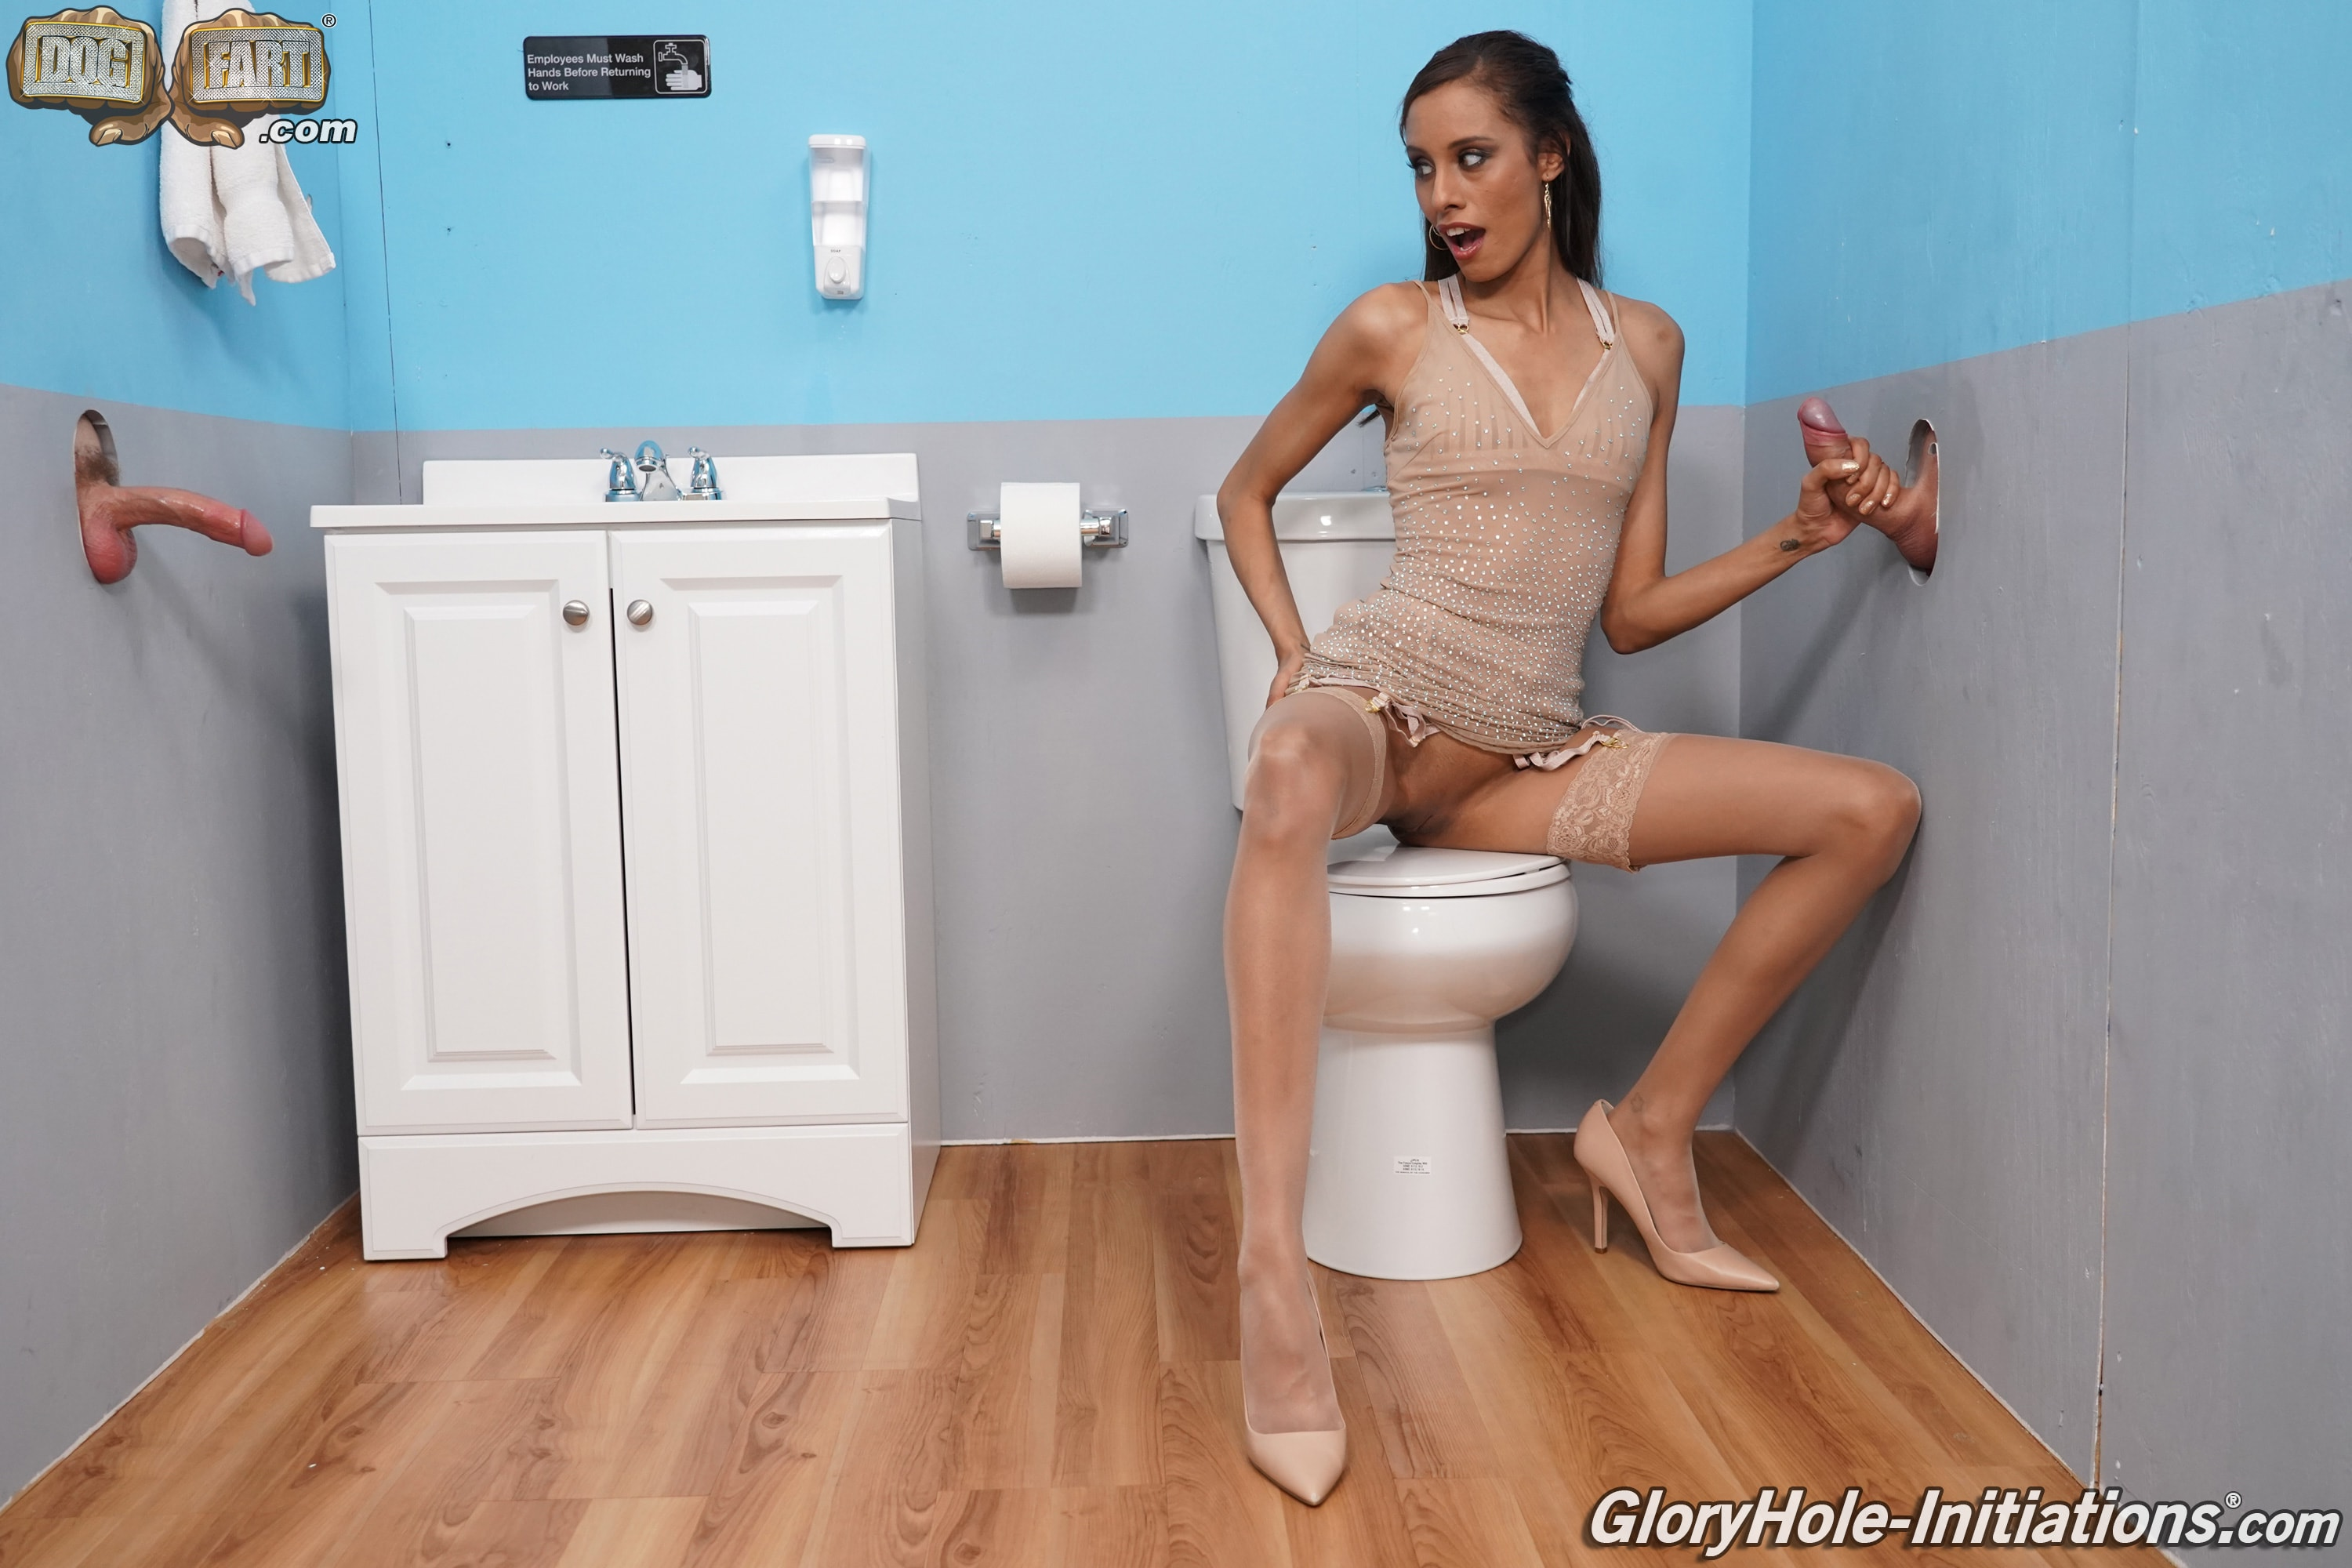 Dogfart '- Gloryhole Initiations' starring Kylie LeBeau (Photo 14)